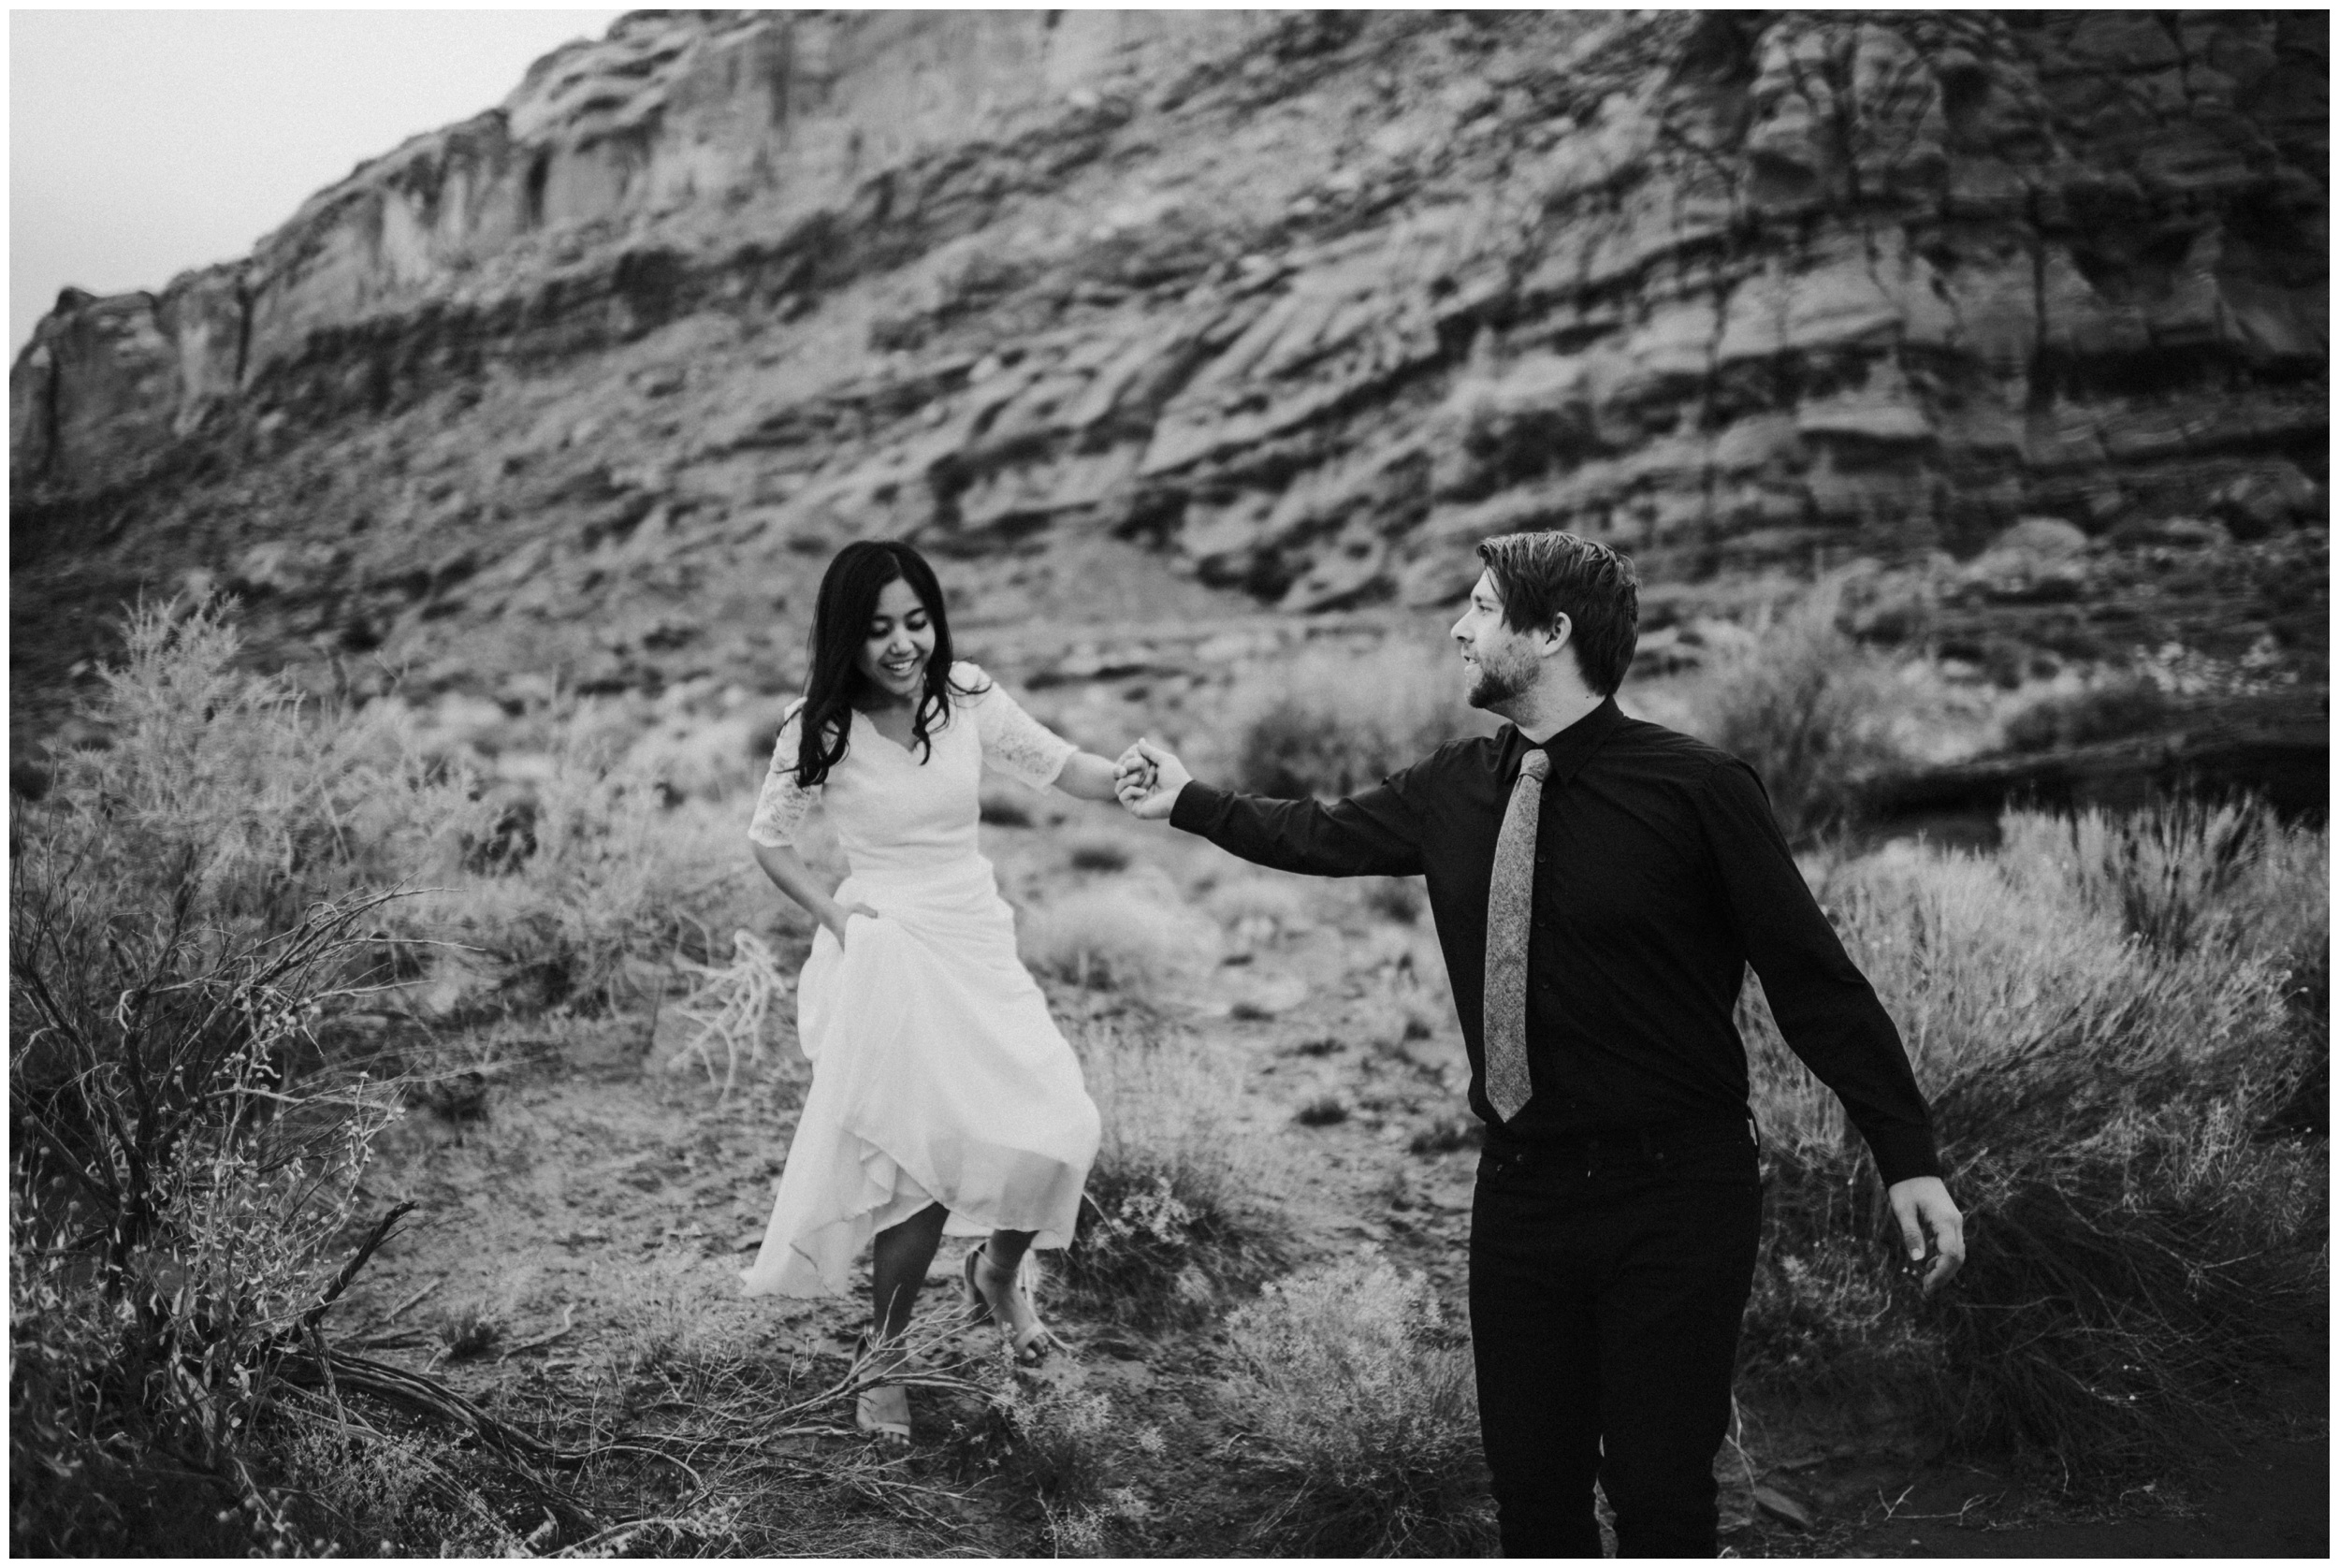 Groom helping bride, in between moments, candid photography |Moab Utah, Photographer www.riversandroadsphotography.com